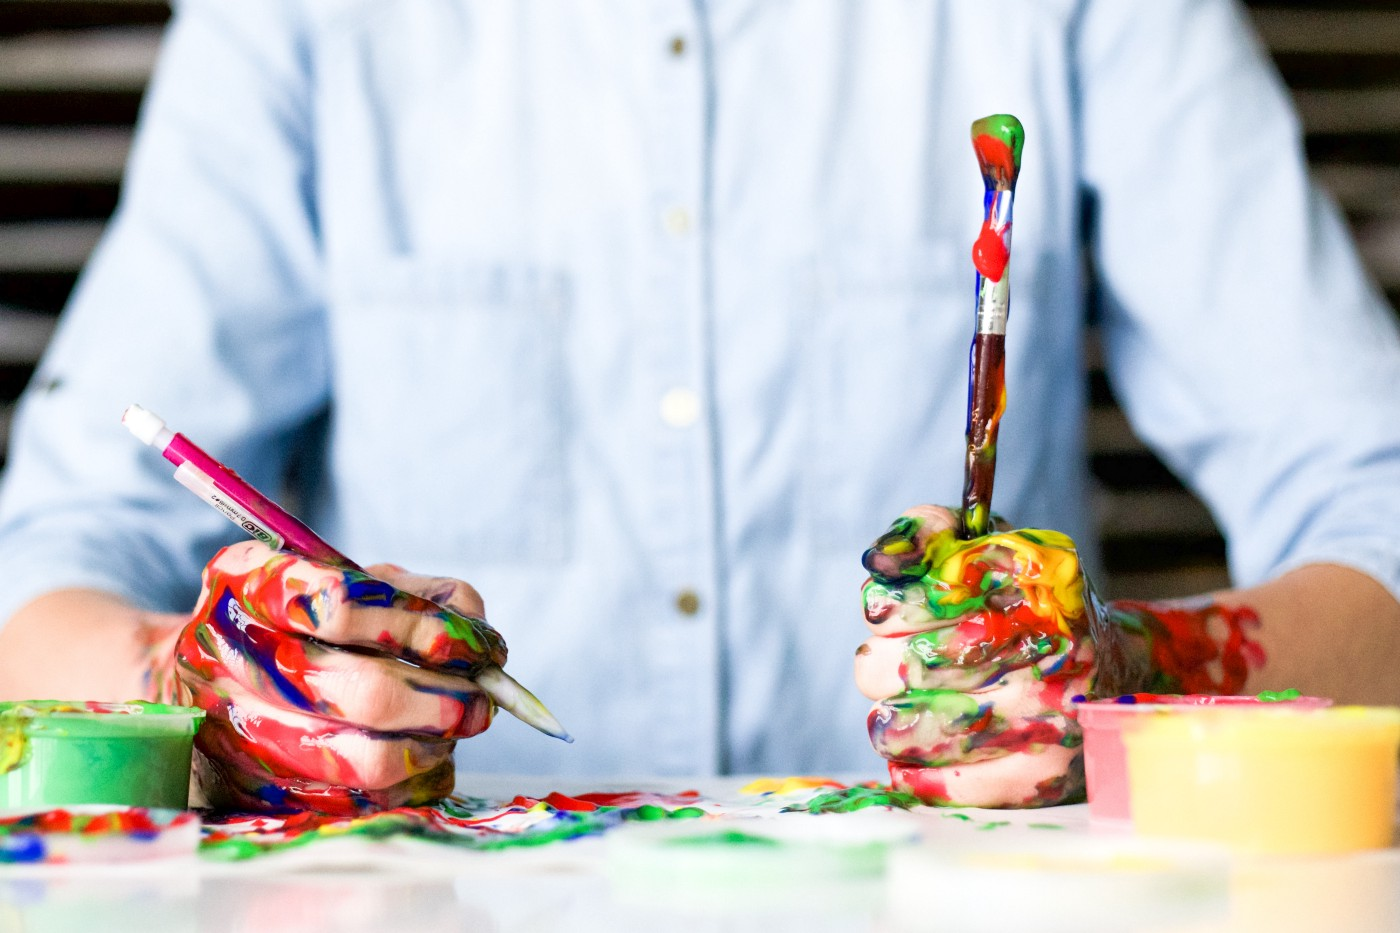 Hands covered in paint, holding a pencil and a paintbrush